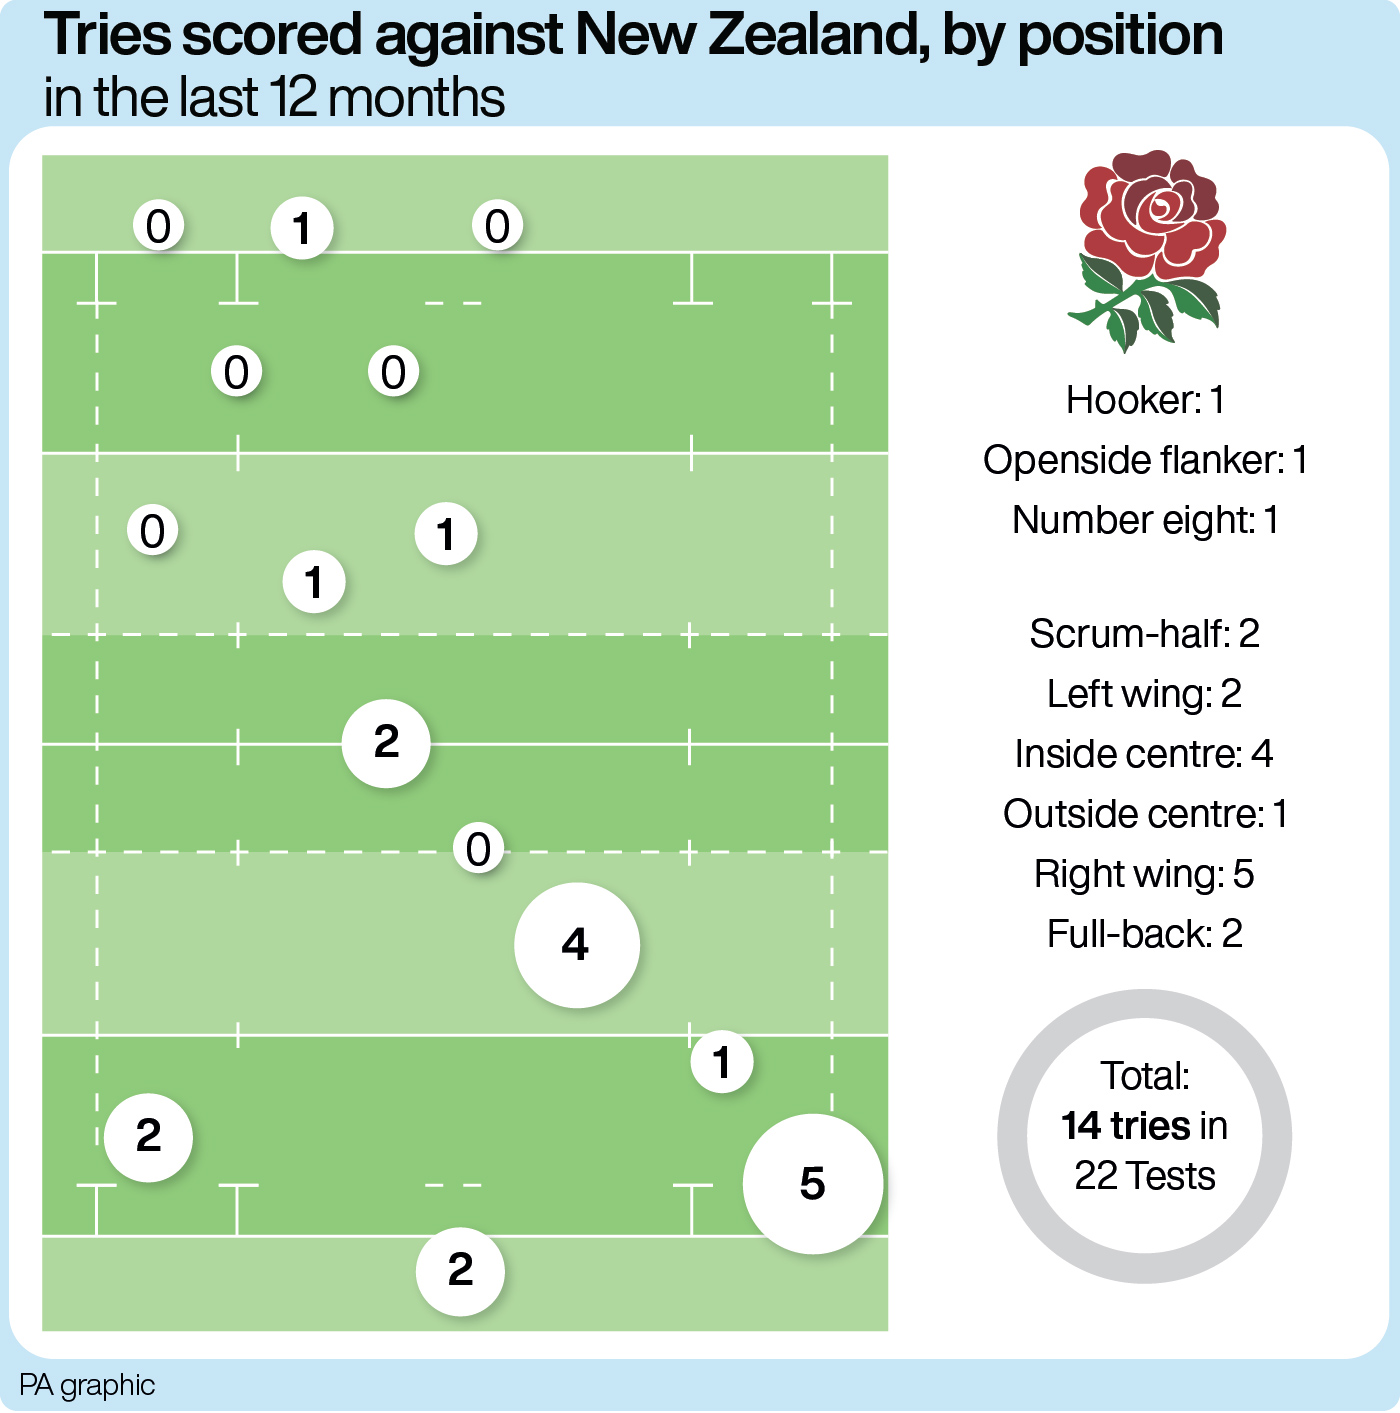 New Zealand have conceded more tries to right wingers than any other player